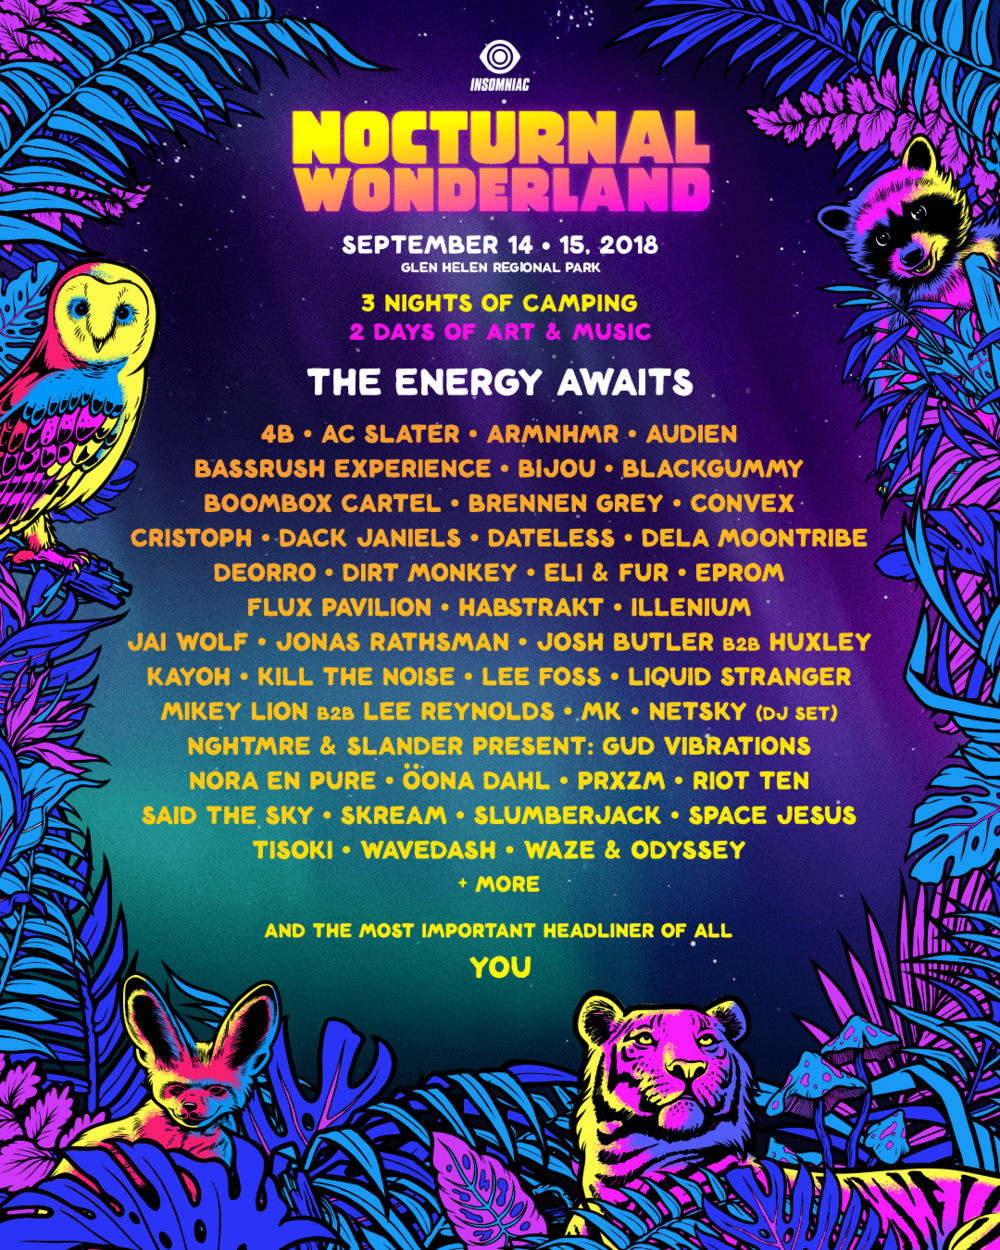 Nocturnal Wonderland - Spread your wings, gather your pack, and get ready for two nights of dancing and three days of camping—plus the art, the performers, and your Nocturnal dance family. Join us once again. The Energy Awaits! Nocturnal Wonderland 2018 takes place Friday, September 14, and Saturday, September 15, at Glen Helen Regional Park in Southern California.  Layaway plans are available at checkout on Step 2 under Payment Information.